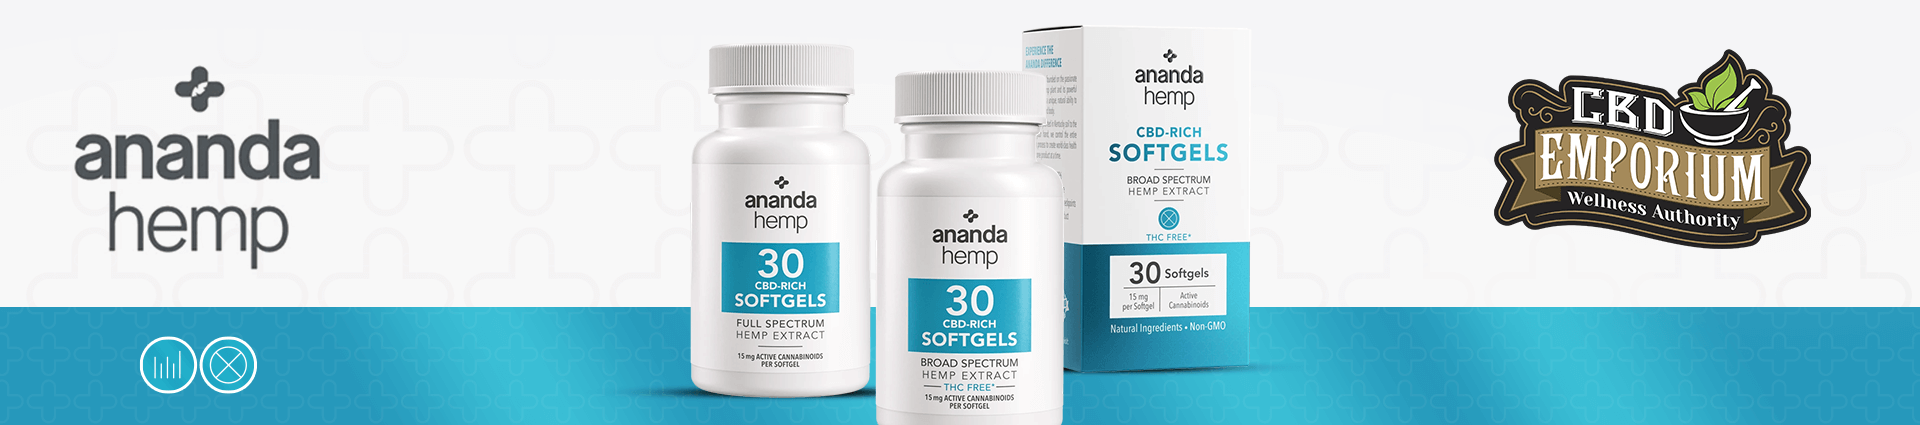 Ananda Hemp CBD Soft Gels at CBD Emporium